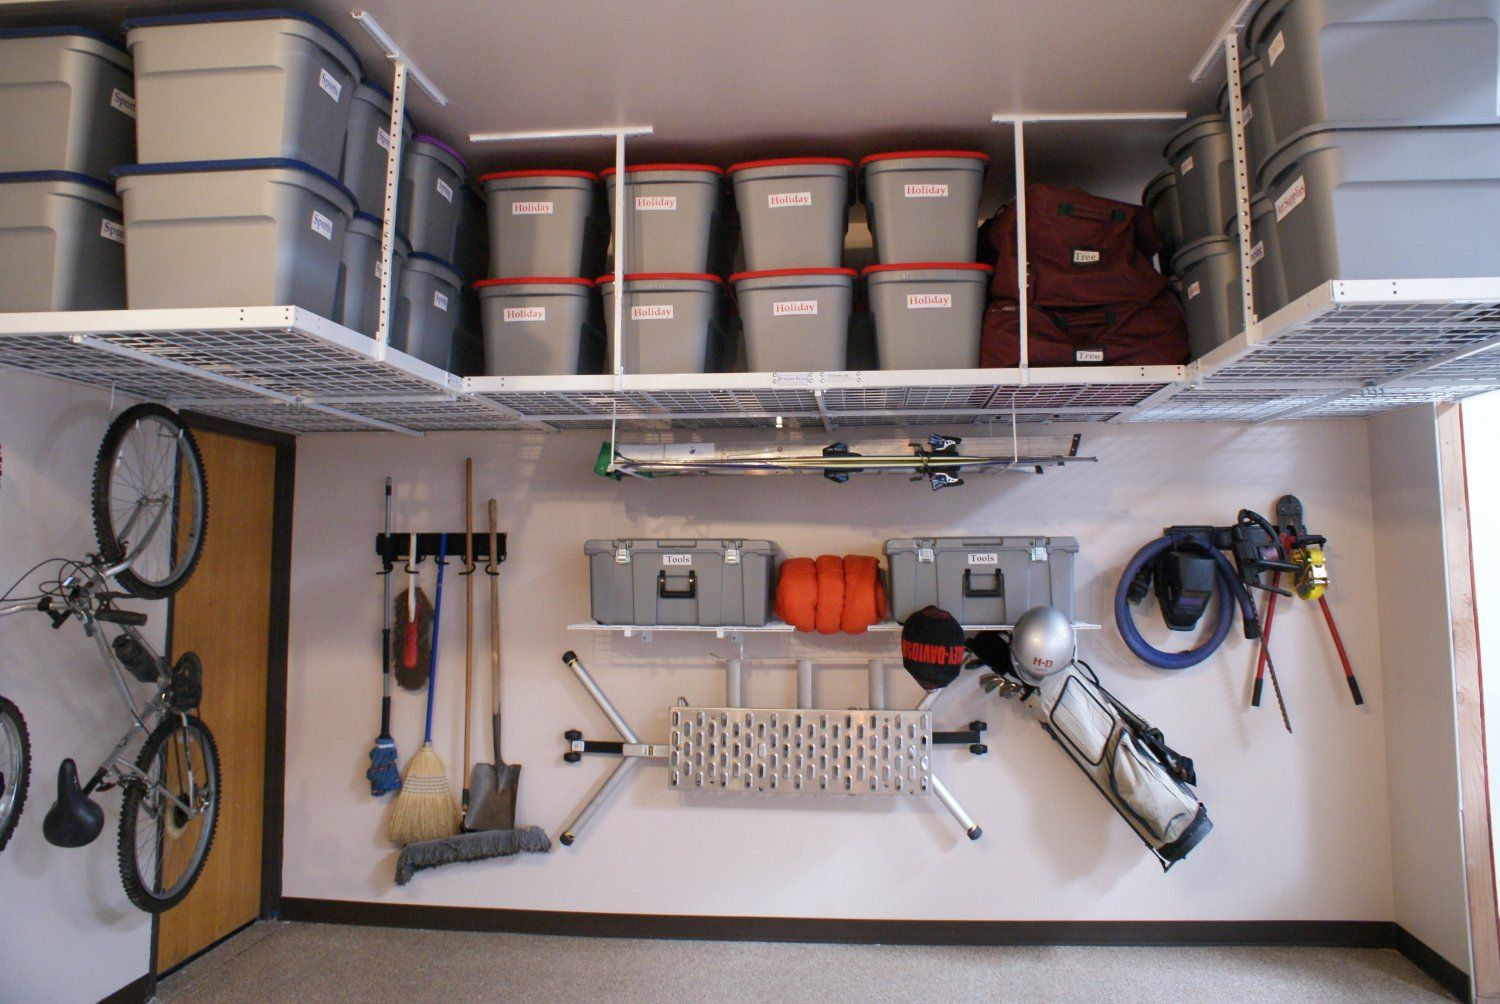 hung system pulley ceiling overhead diy build storage shelves garage rafter systems ideas